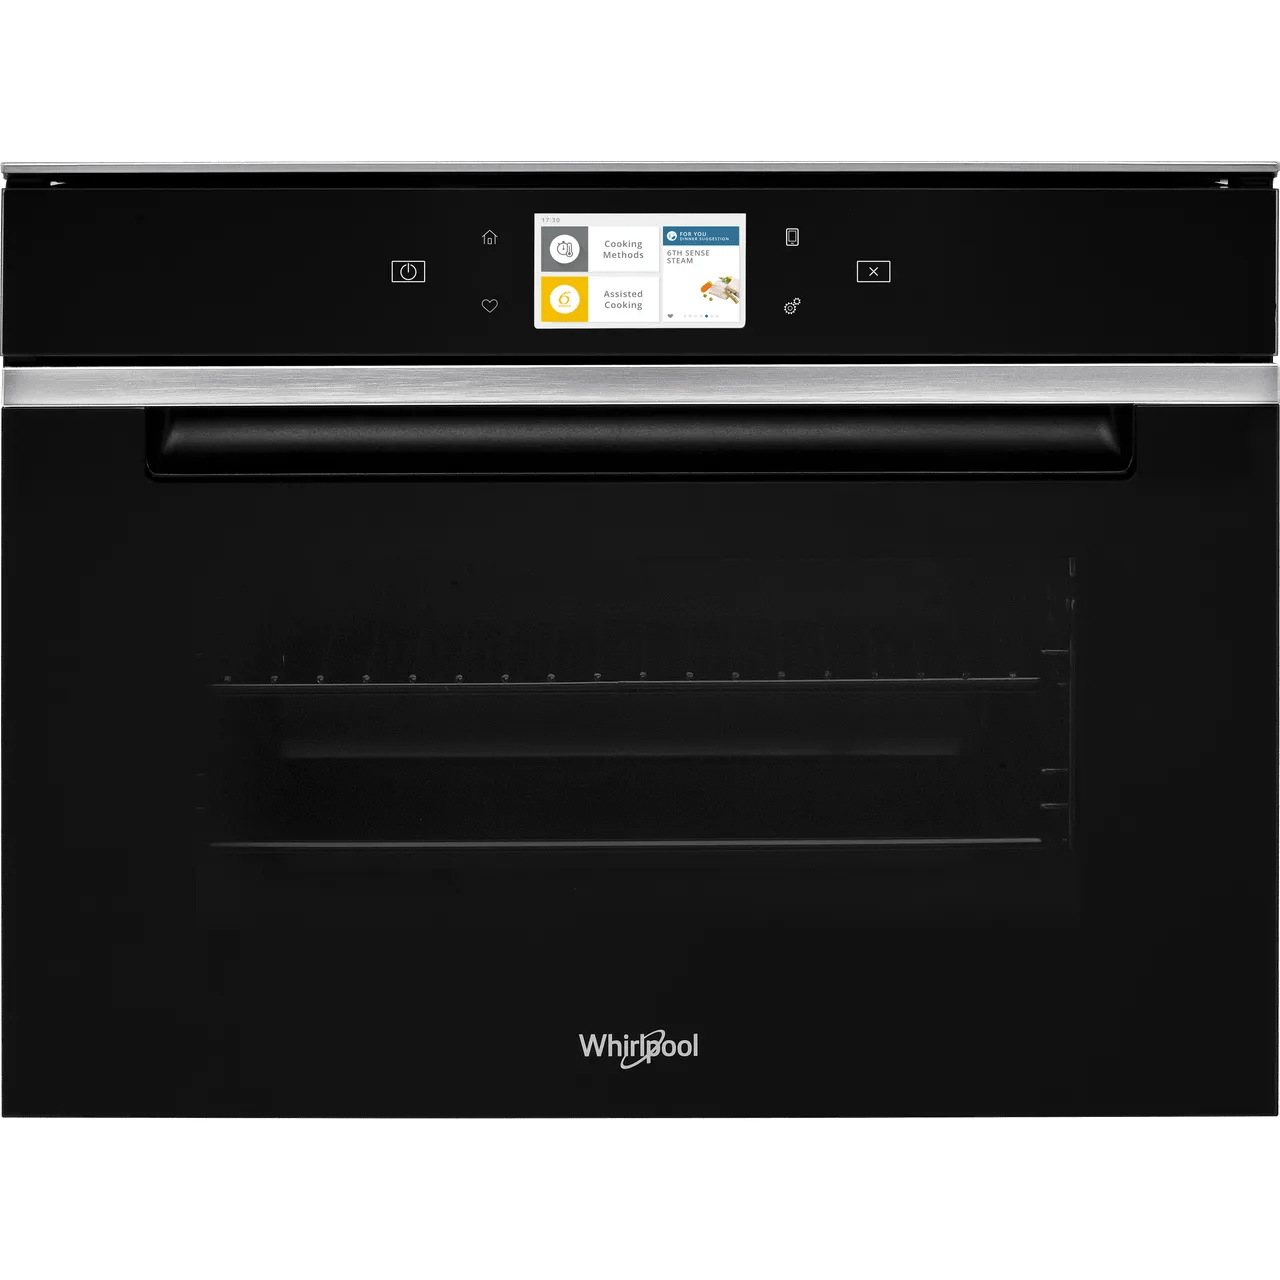 whirlpool w collection w11ims180uk built in steam oven black